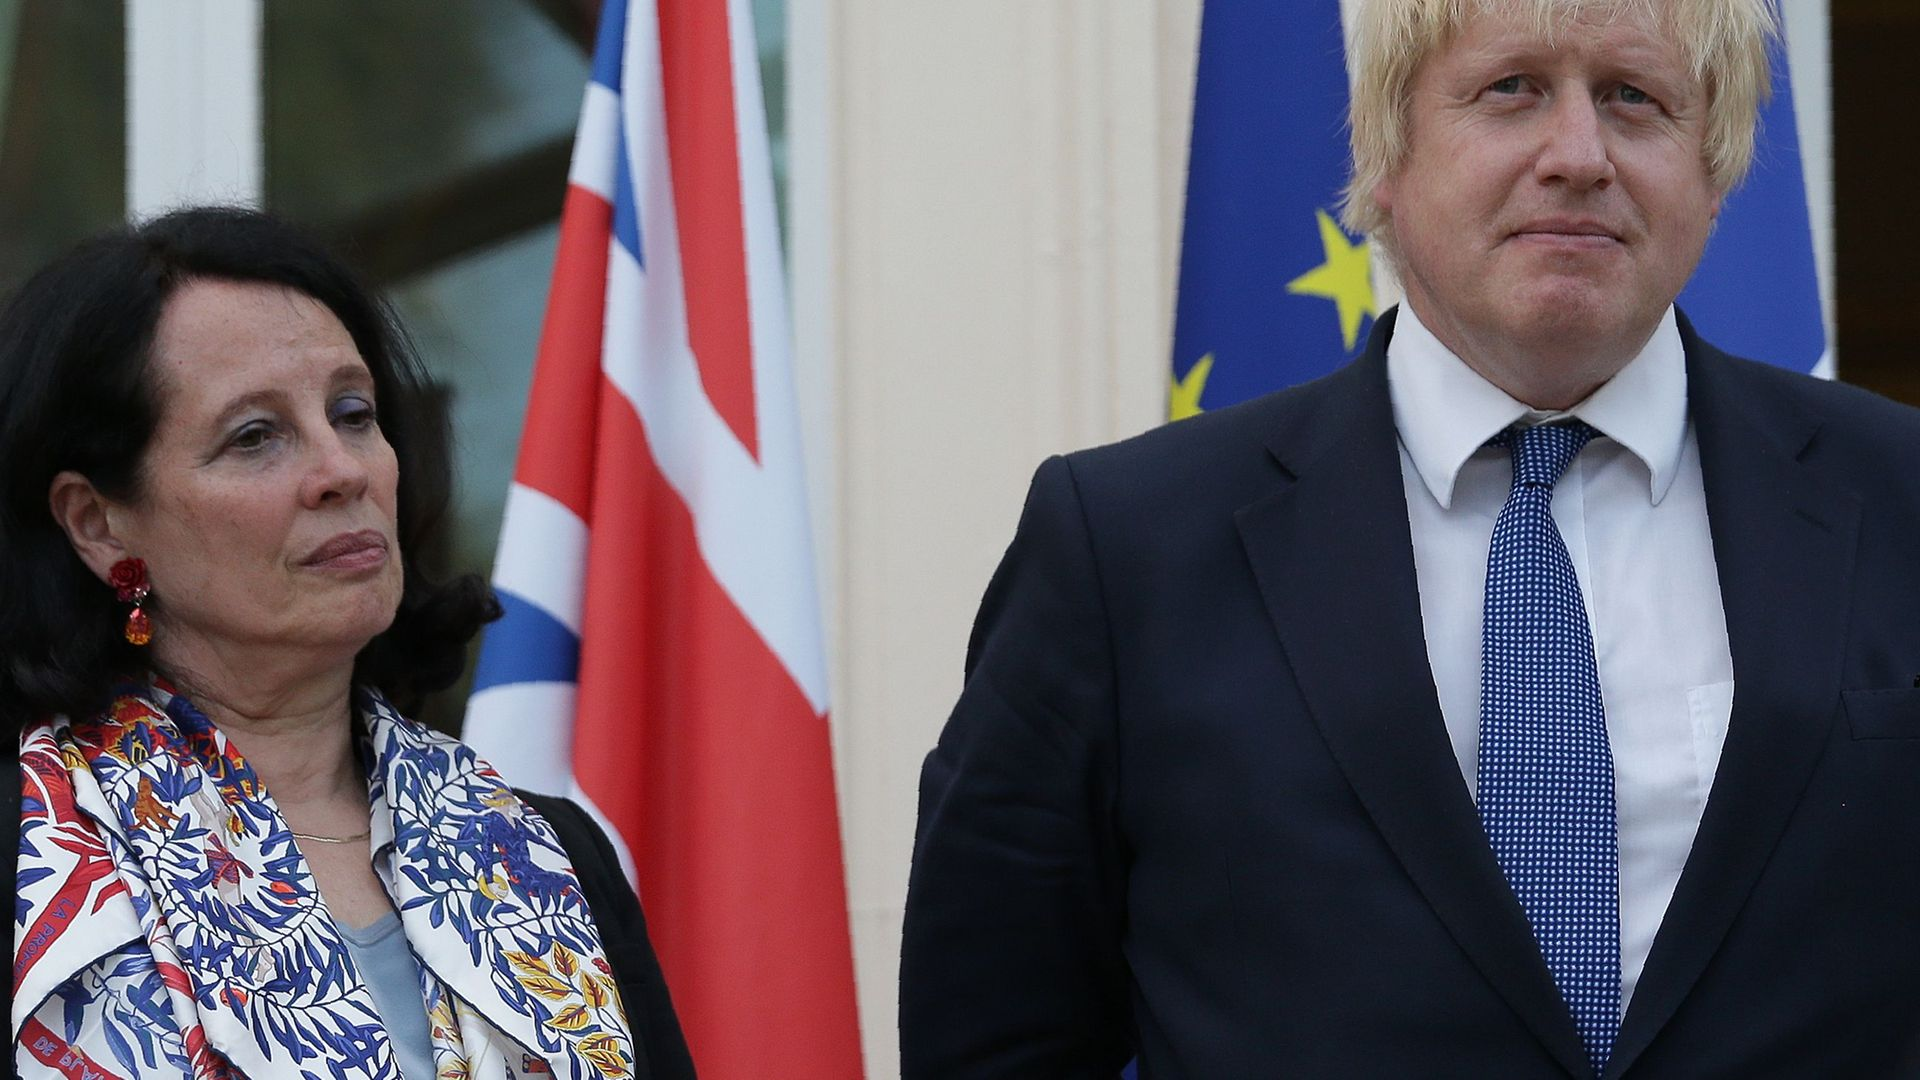 French ambassador Sylvie Bermann listens to Boris Johnson, then foreign secretary, speak during a reception in July 2016 - Credit: AFP via Getty Images